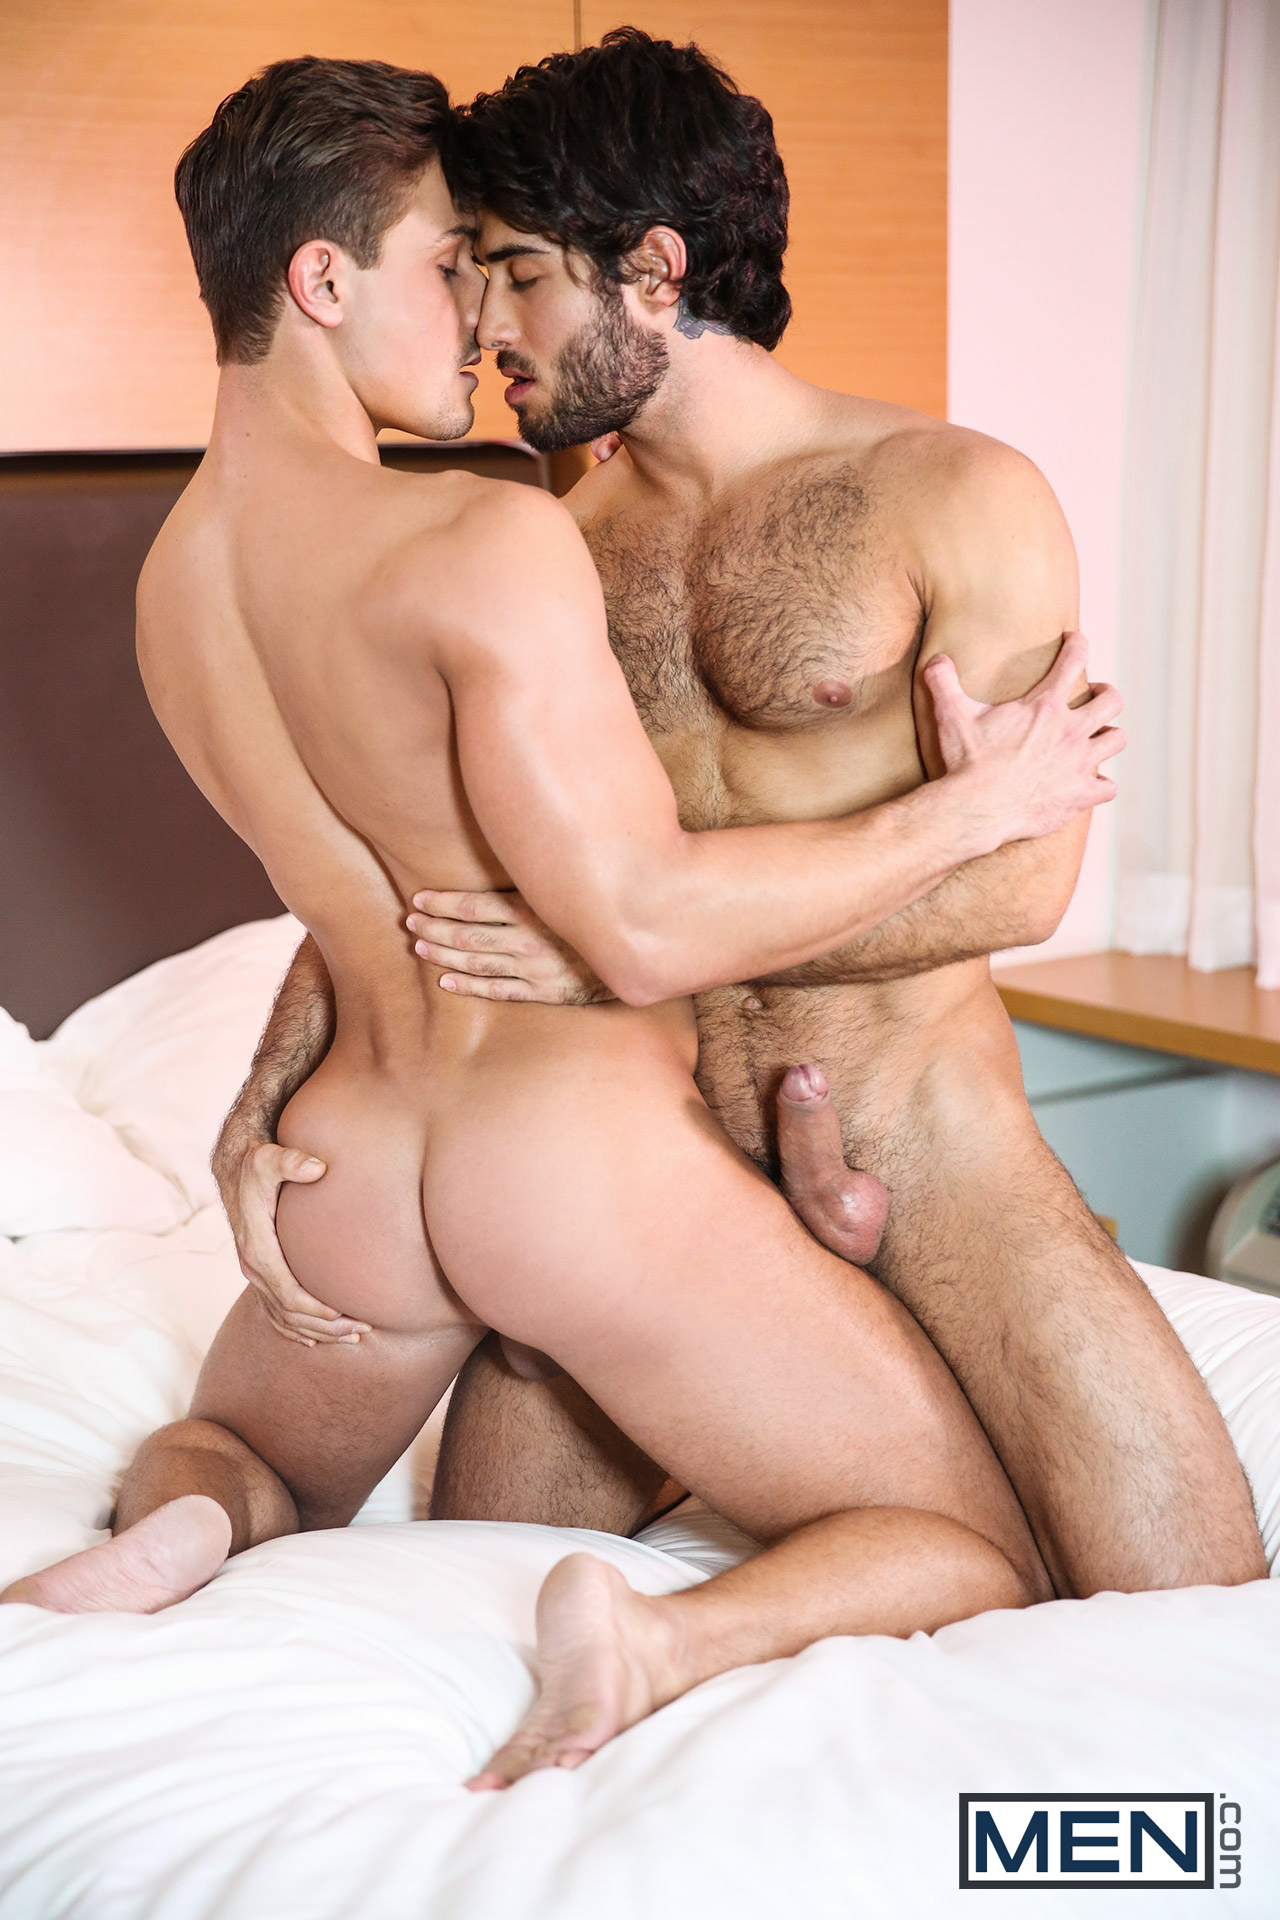 Super Hot Hetero Guys Doing Gay Sex Free Gay